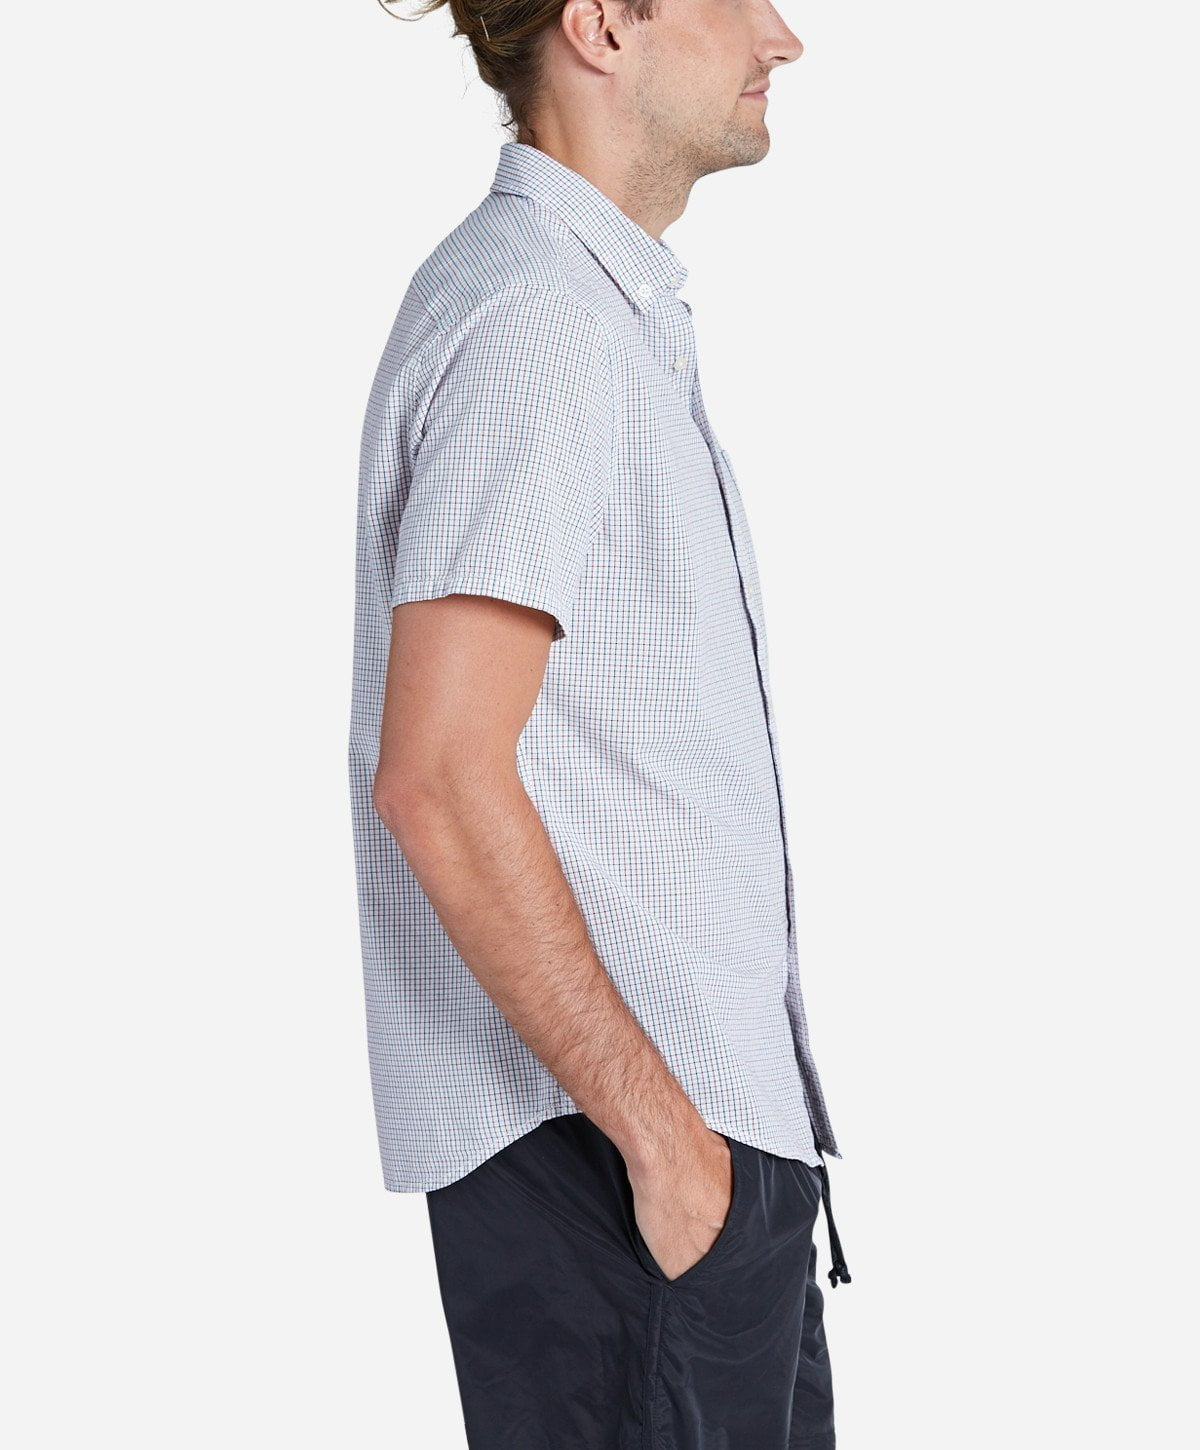 Racket Short Sleeve Shirt - White